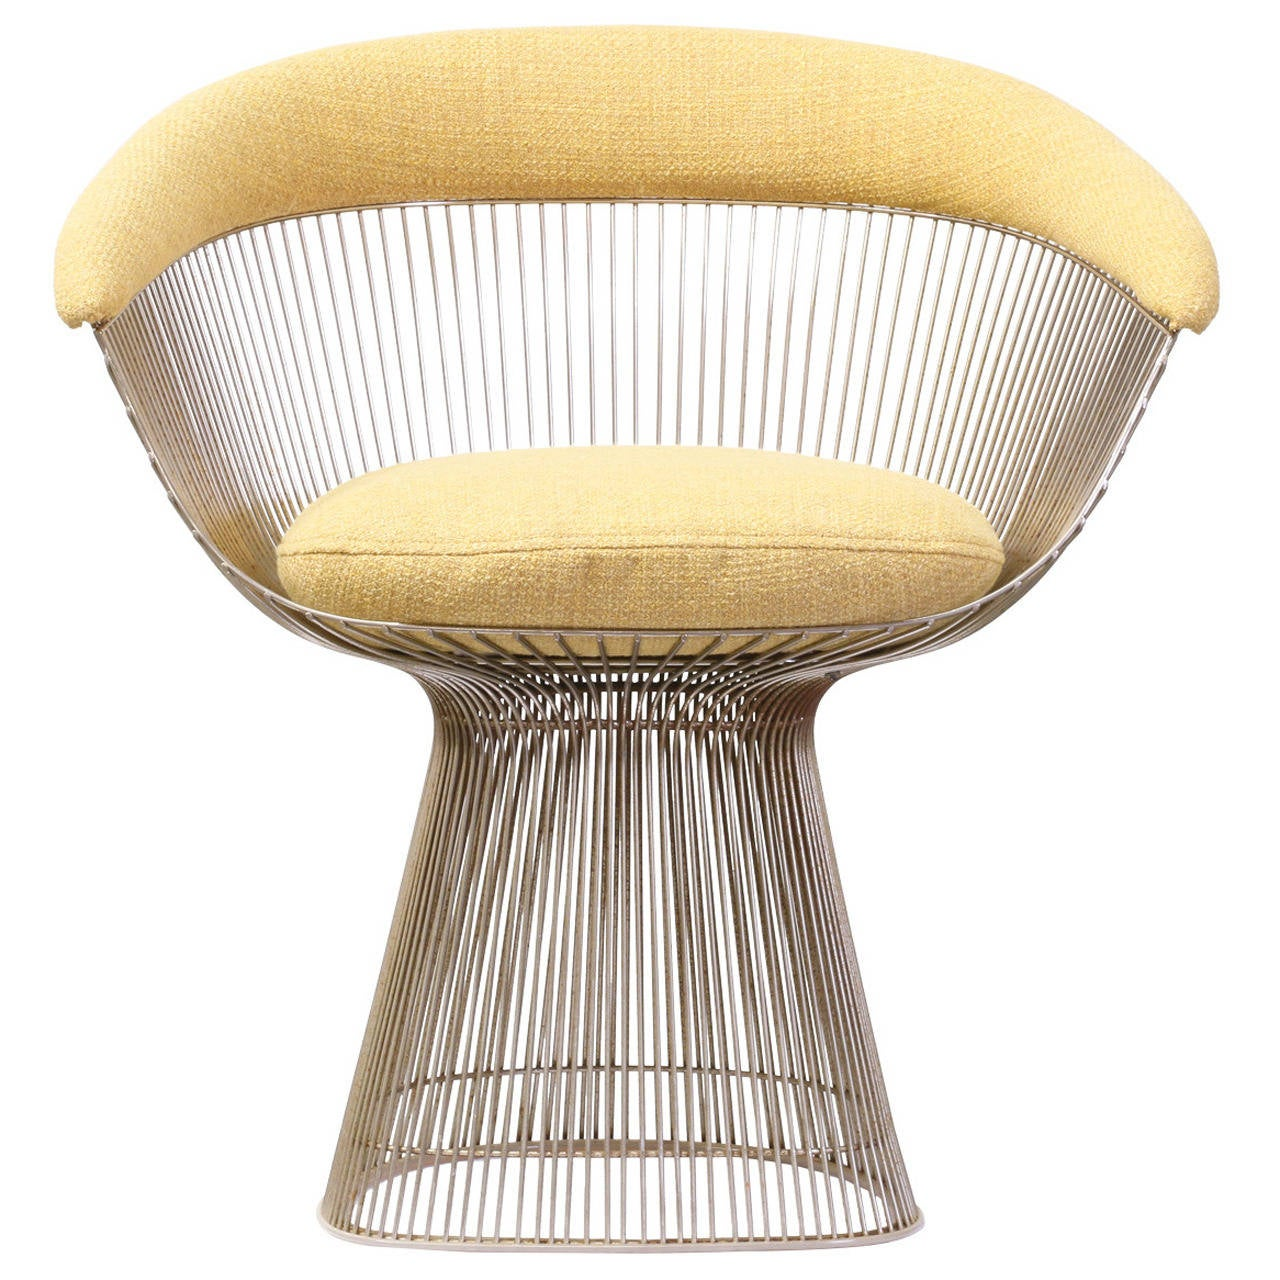 Warren Platner Steel Wire Chair for Knoll at 1stdibs